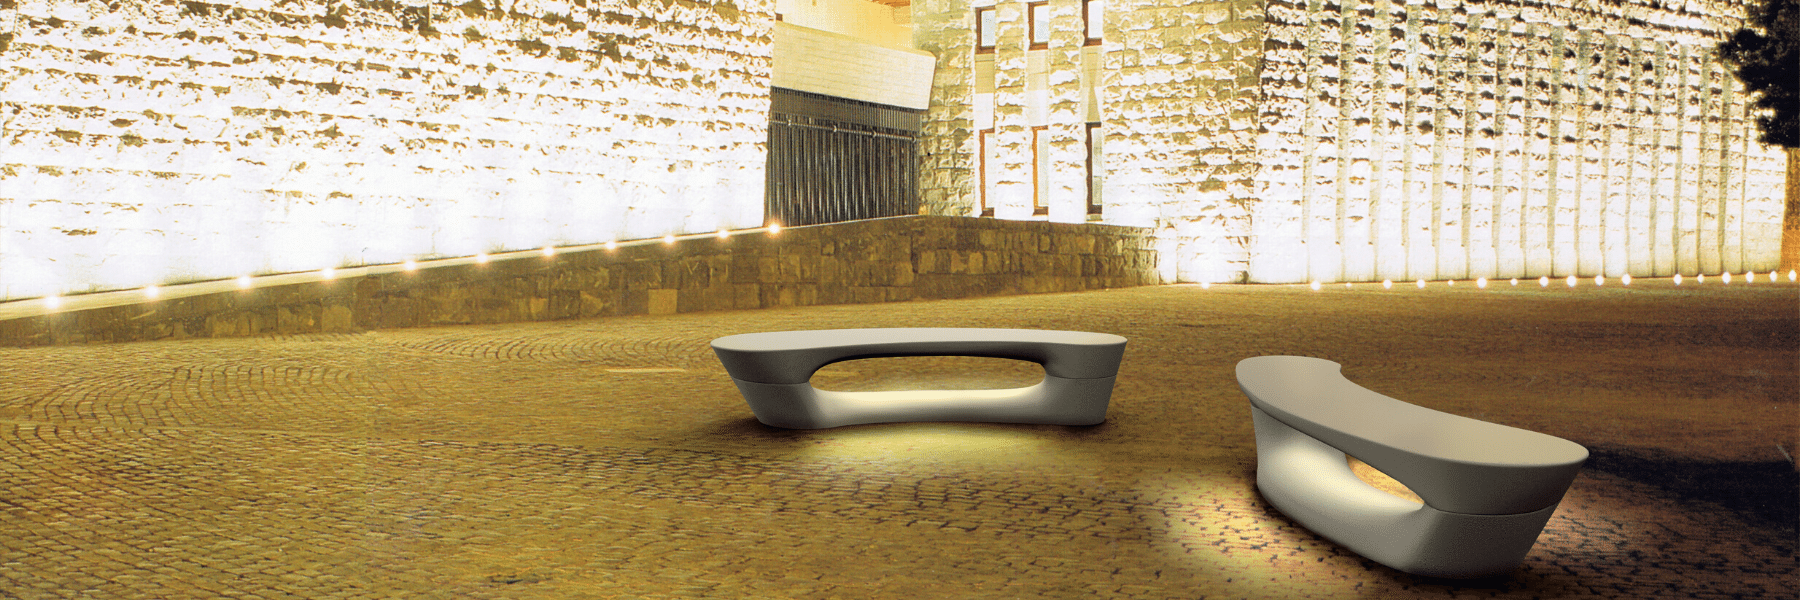 <p>Outdoor Furniture Contemporary Collection – Nevada Bench</p> <p> </p> <p>Contemporary stylish seating for indoor and outdoor use, designed to be used in public areas in Shopping Centres, Retail Complexes, Exhibition Halls etc Capturing essential features such as lightness, functionality, ergonomics and care for the environment.<br /> Desired by architects designing modern outdoor commercial public spaces, waiting areas</p>